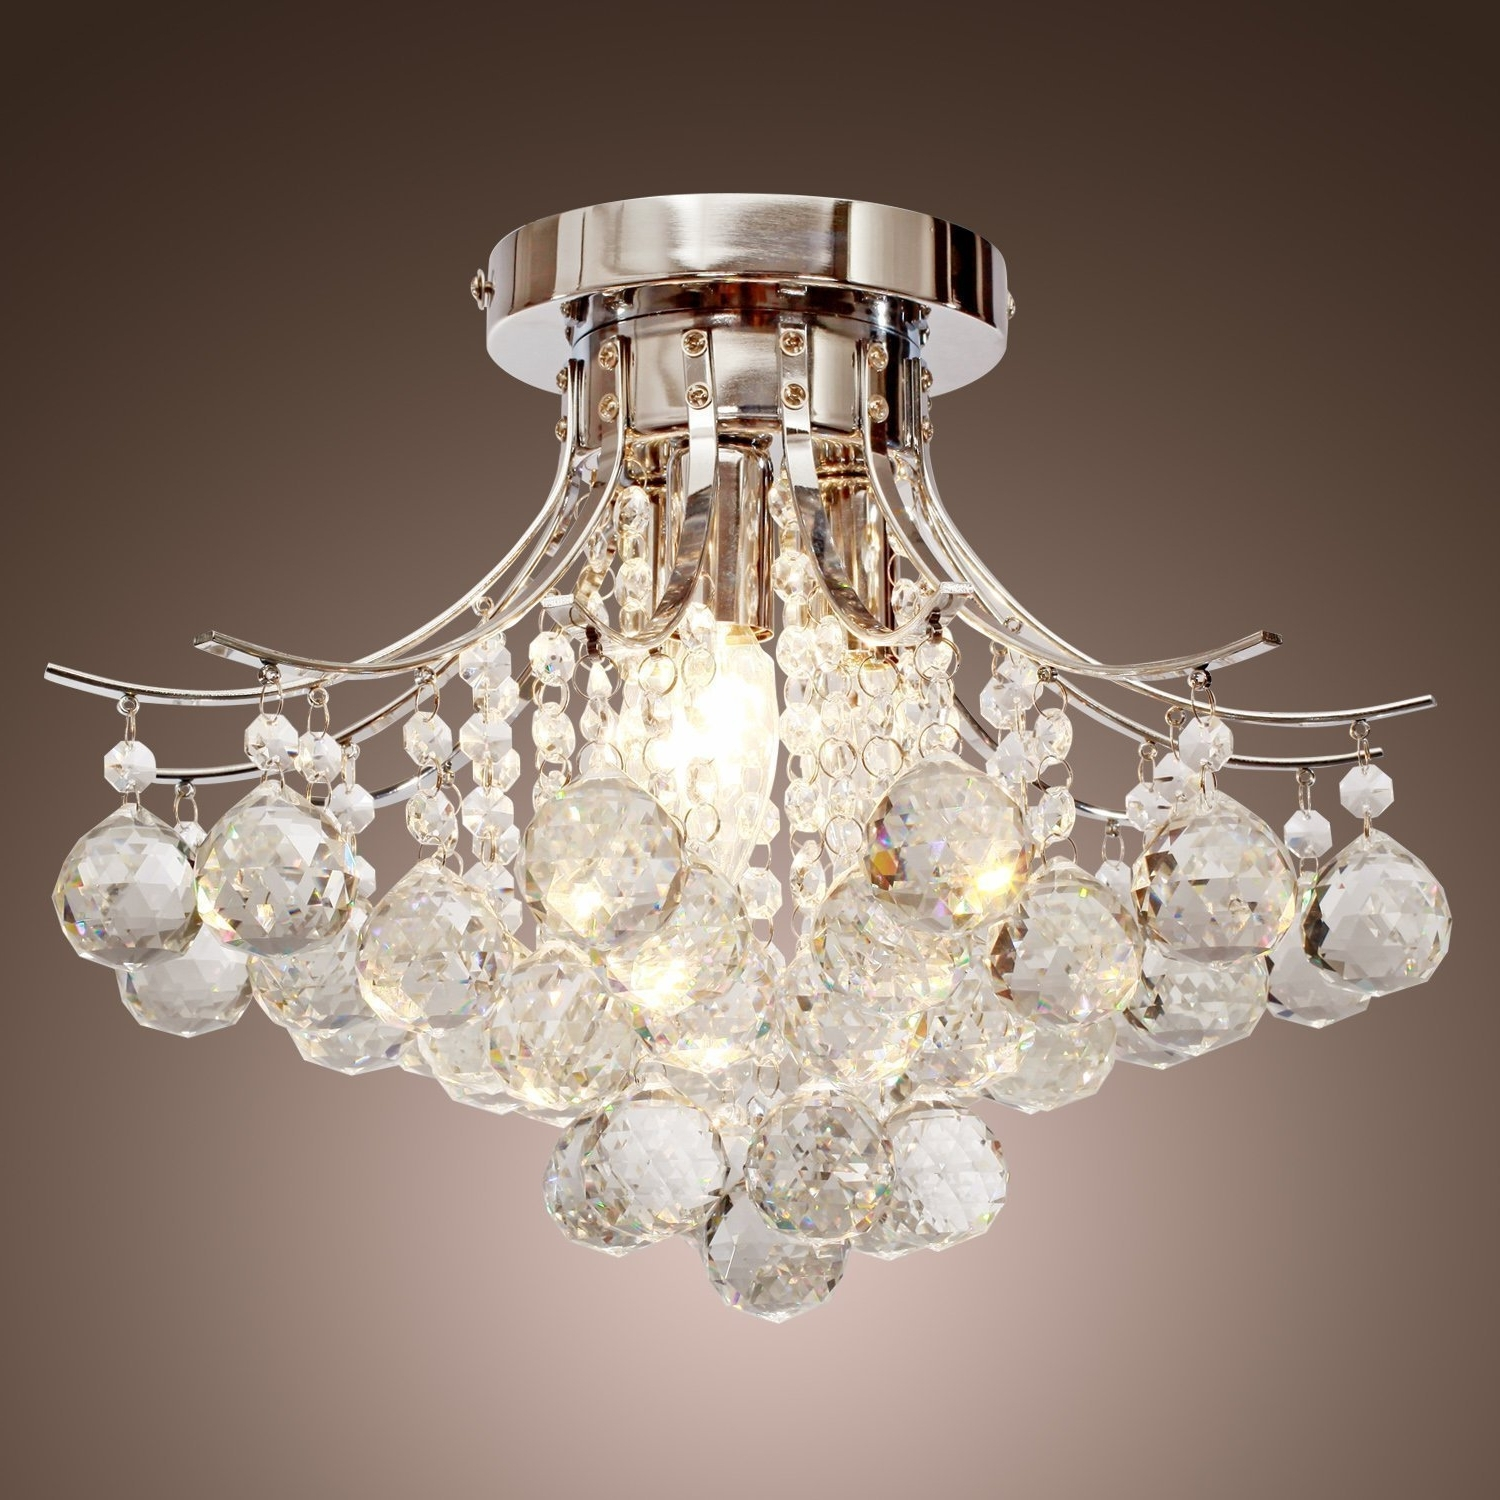 Locoâ Chrome Finish Crystal Chandelier With 3 Lights, Mini Style Inside Widely Used Mini Crystal Chandeliers (View 8 of 15)